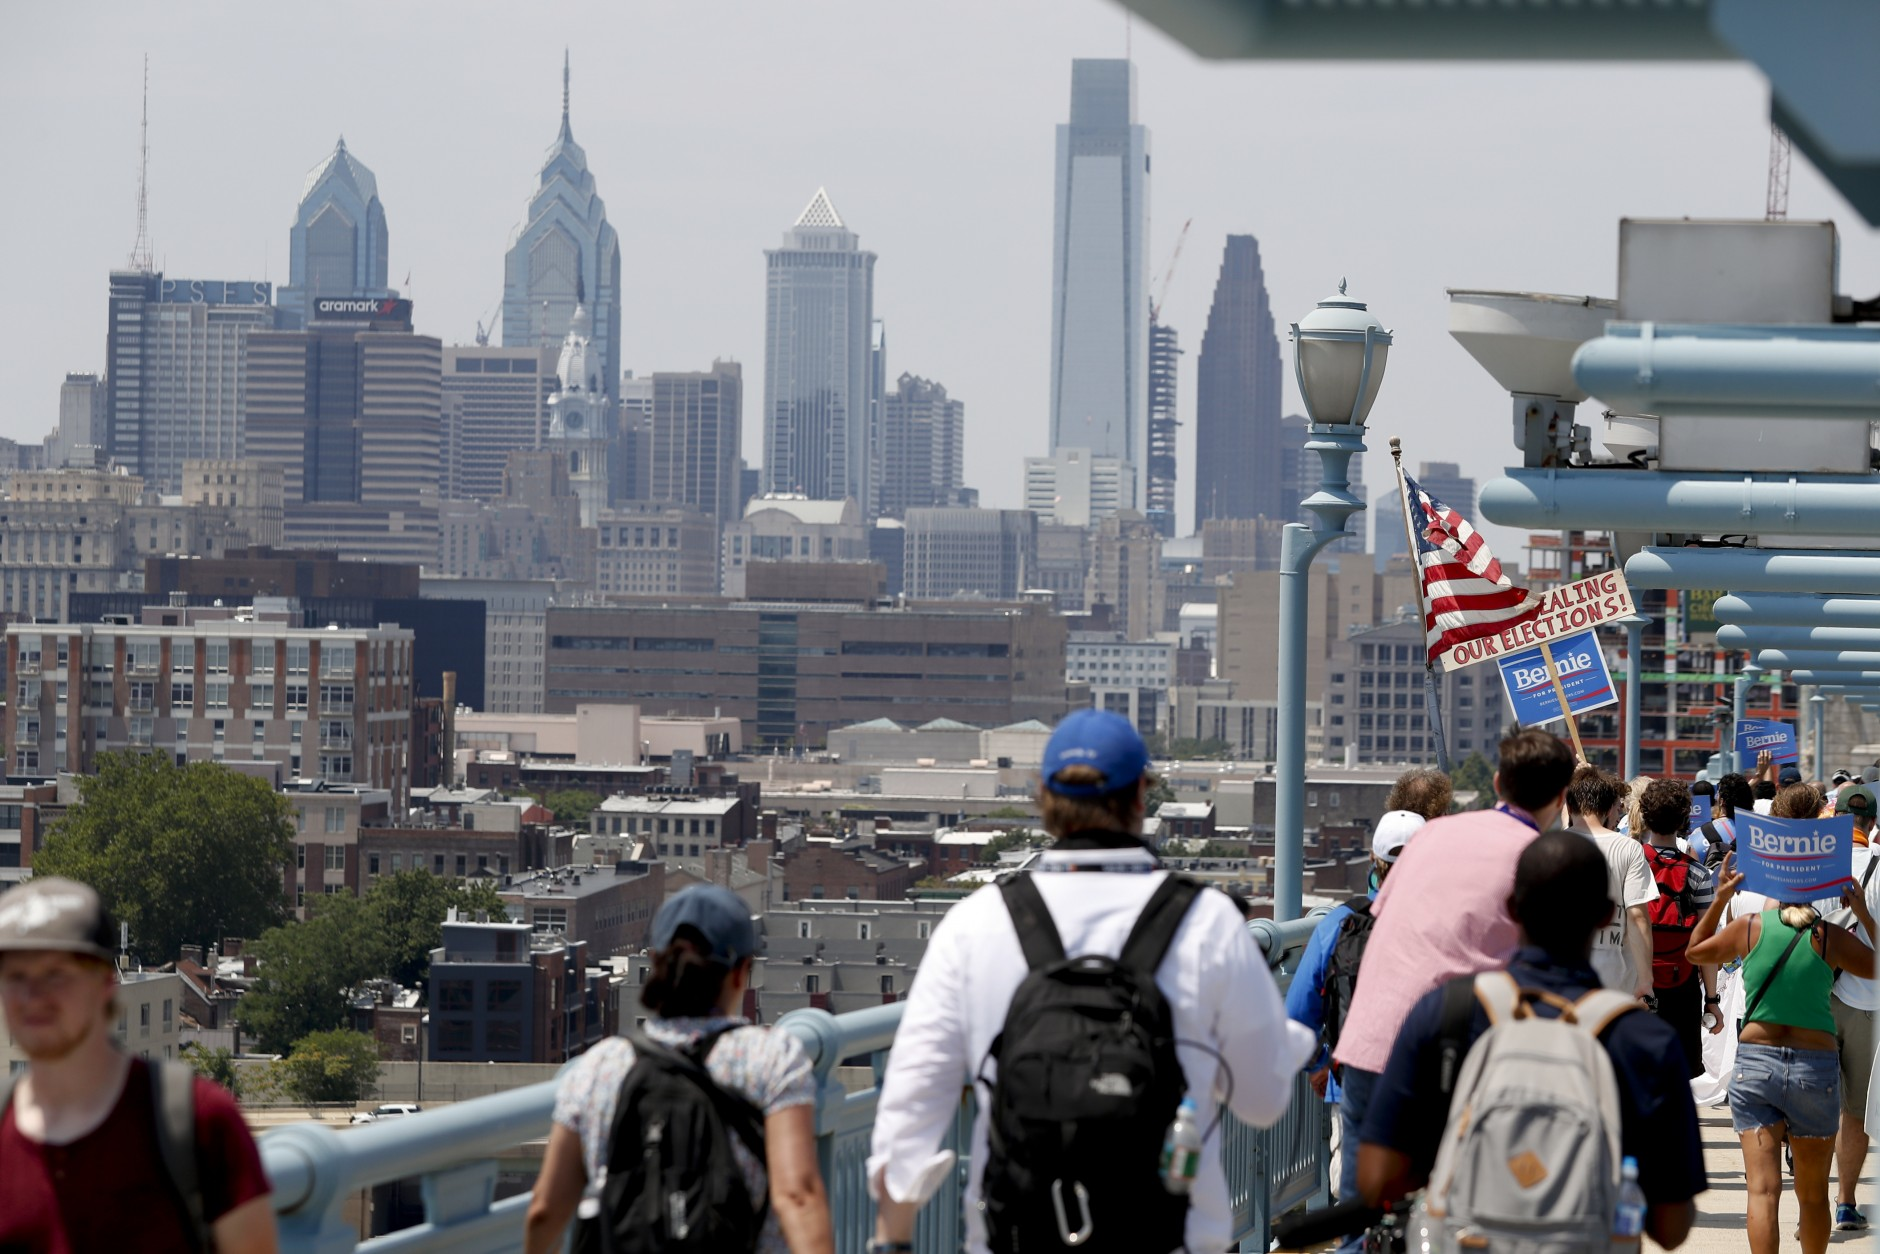 Demonstrators make their way to downtown on the Benjamin Franklin Bridge Monday, July 25, 2016, in Philadelphia, during the first day of the Democratic National Convention. (AP Photo/Alex Brandon)